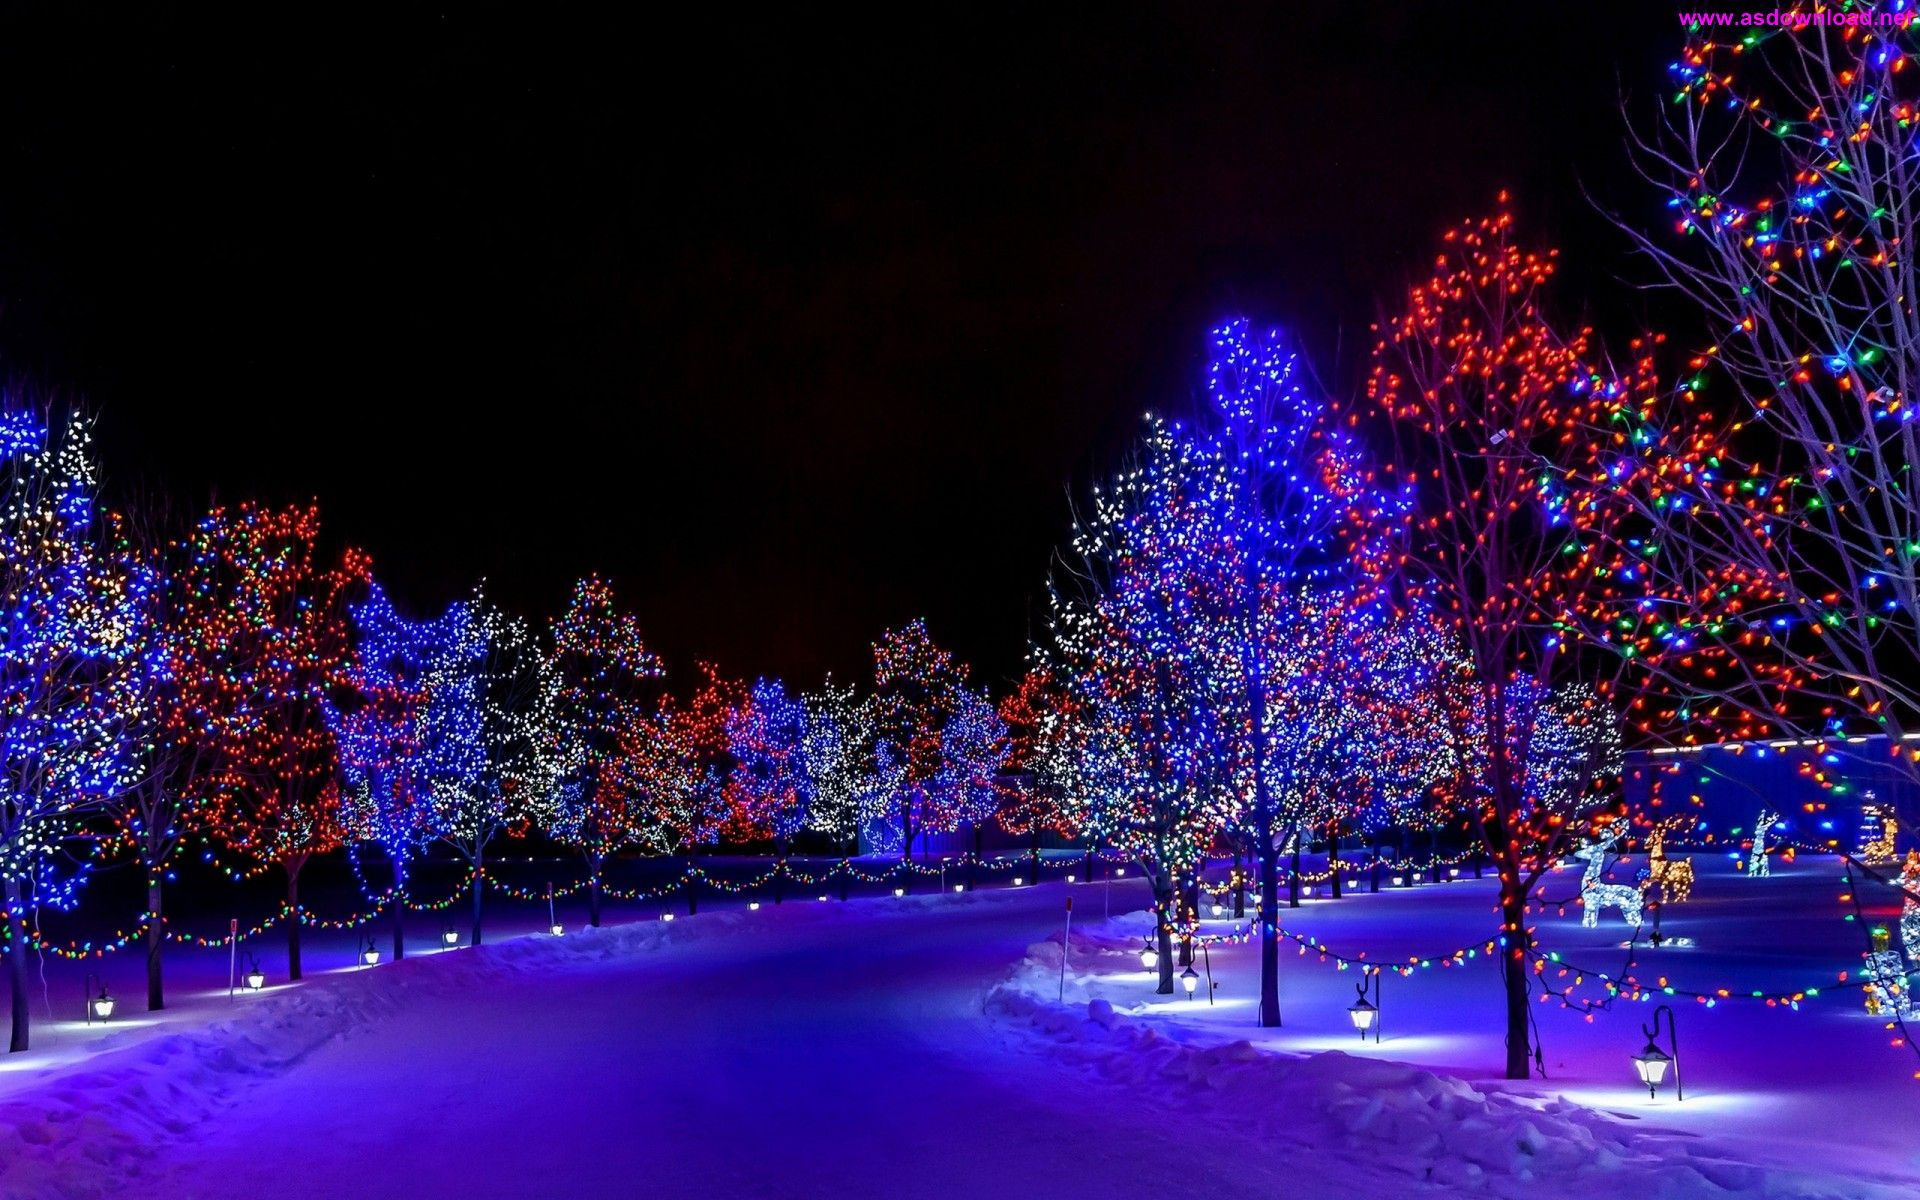 New Year Lights Trees Ornaments Wallpaper دانلود والپیپر جدید 2015